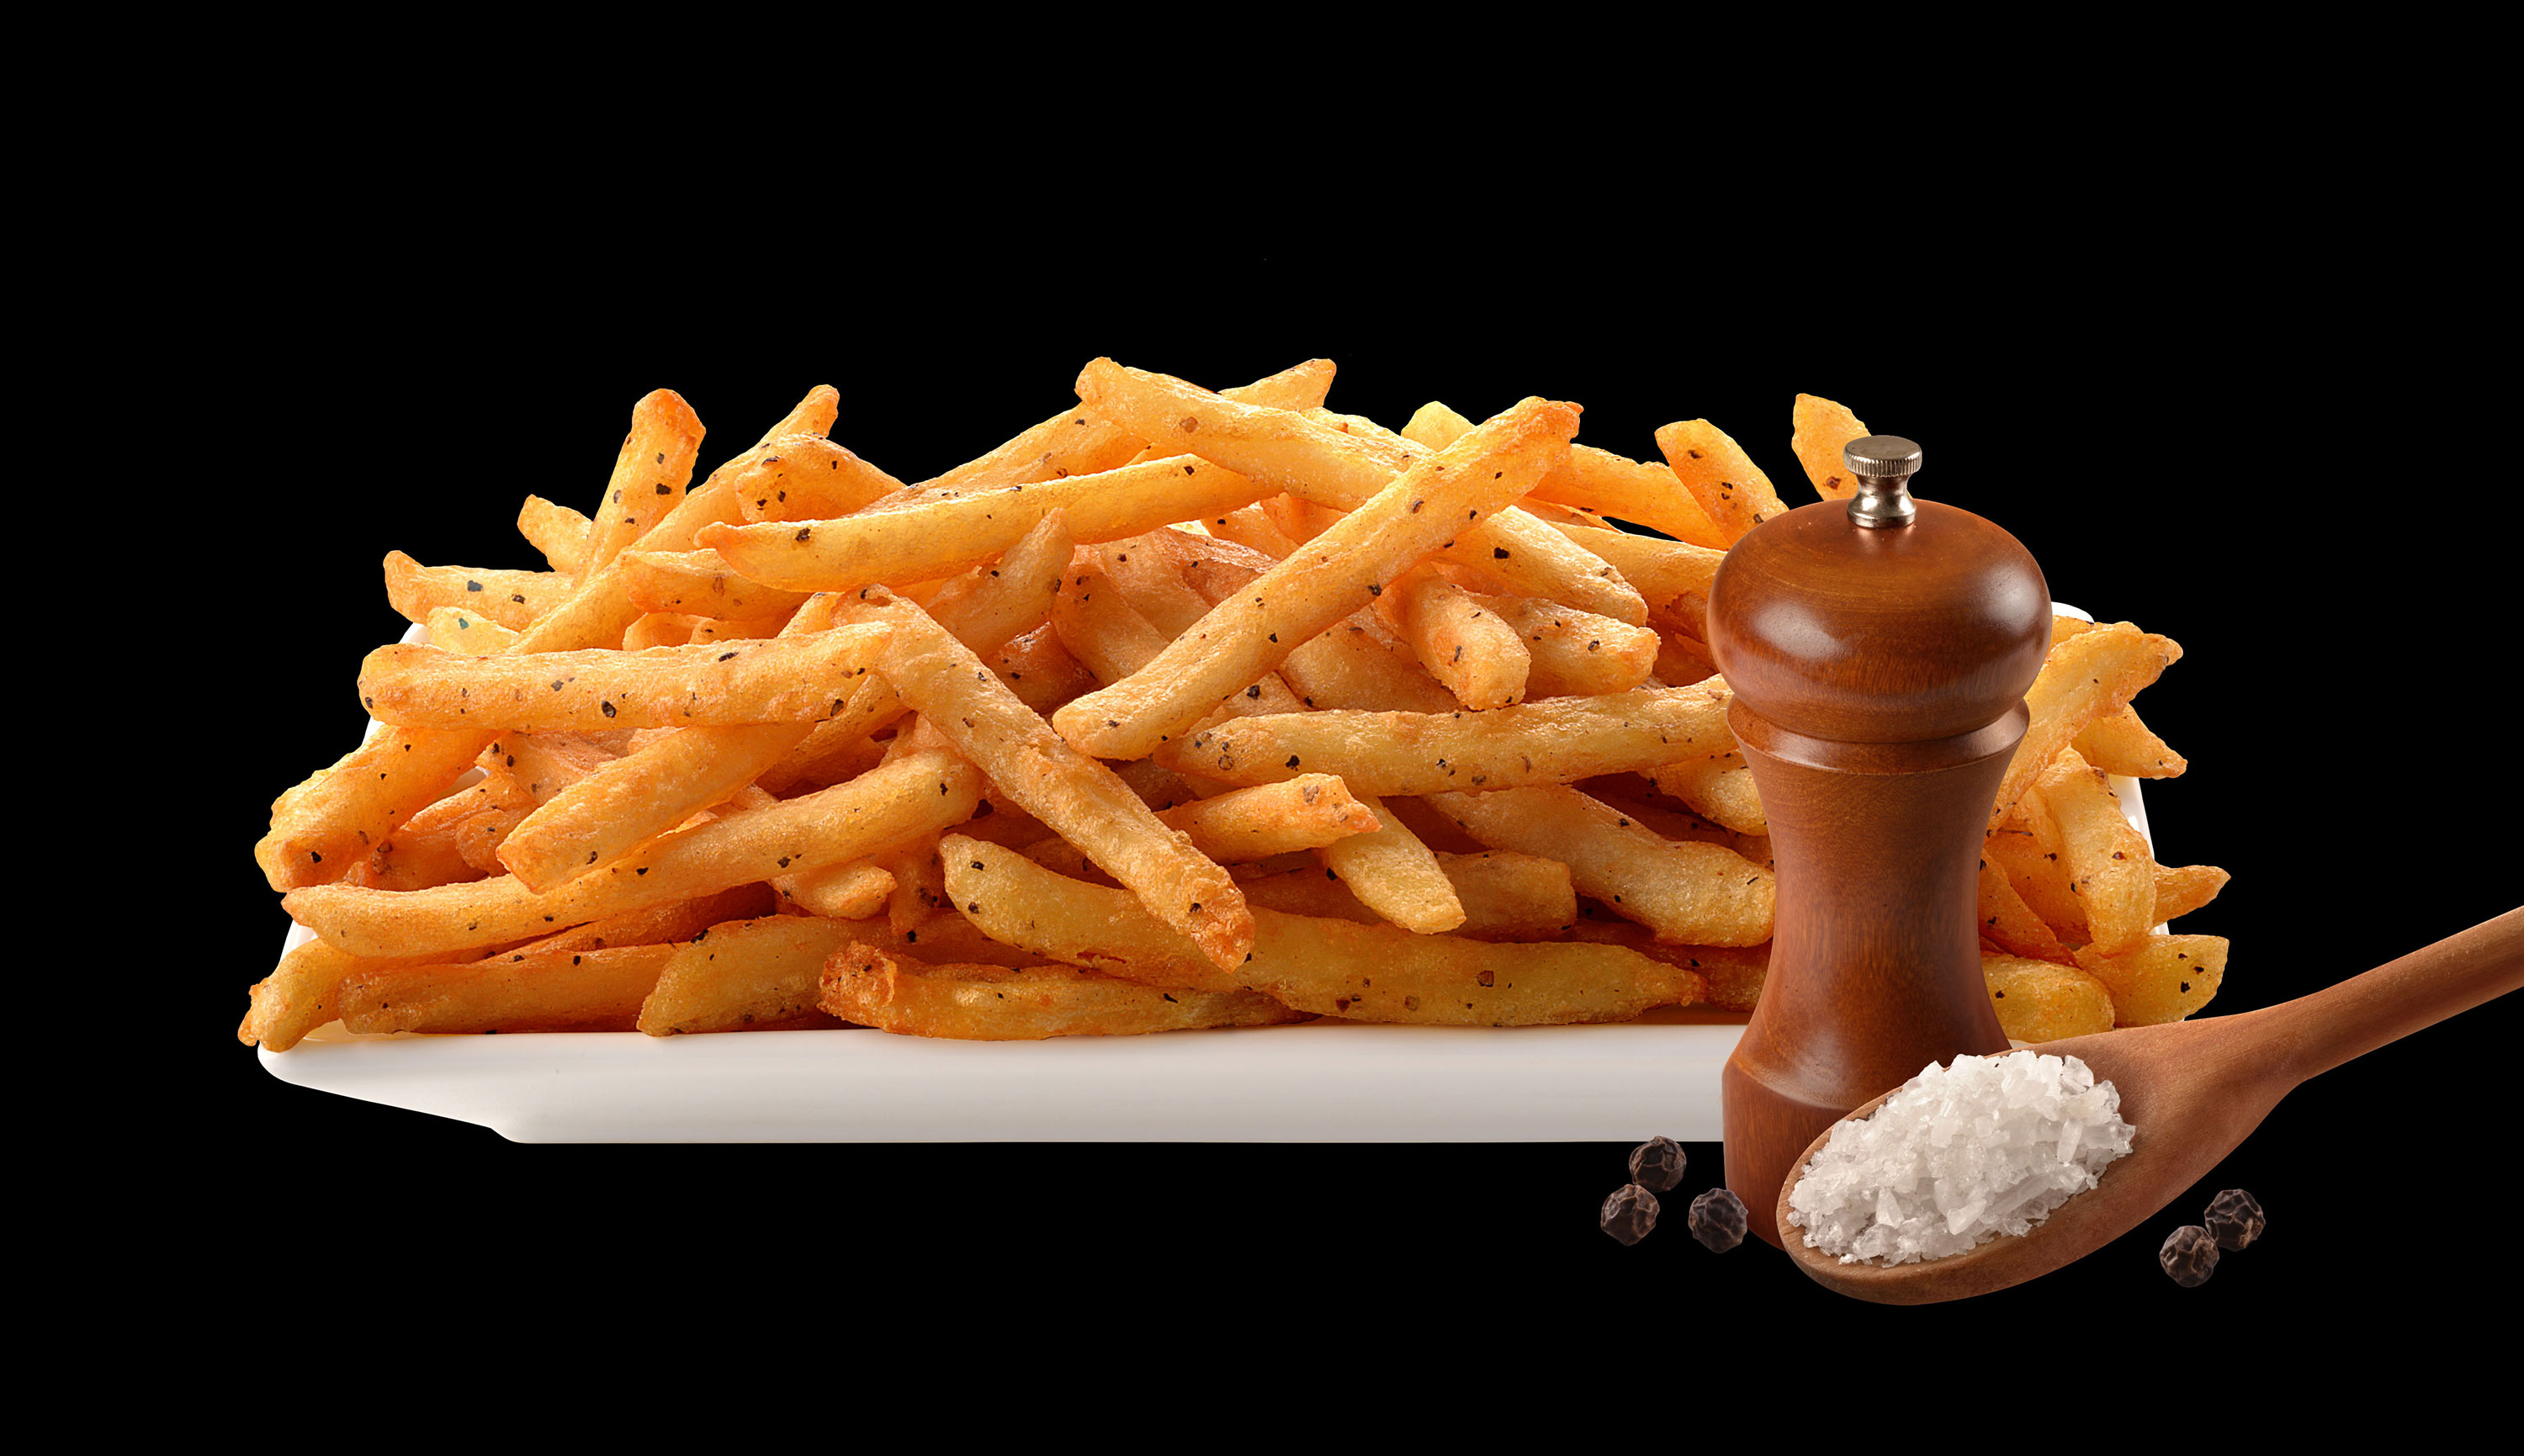 mike wepplo photoreal photography salt and pepper fries